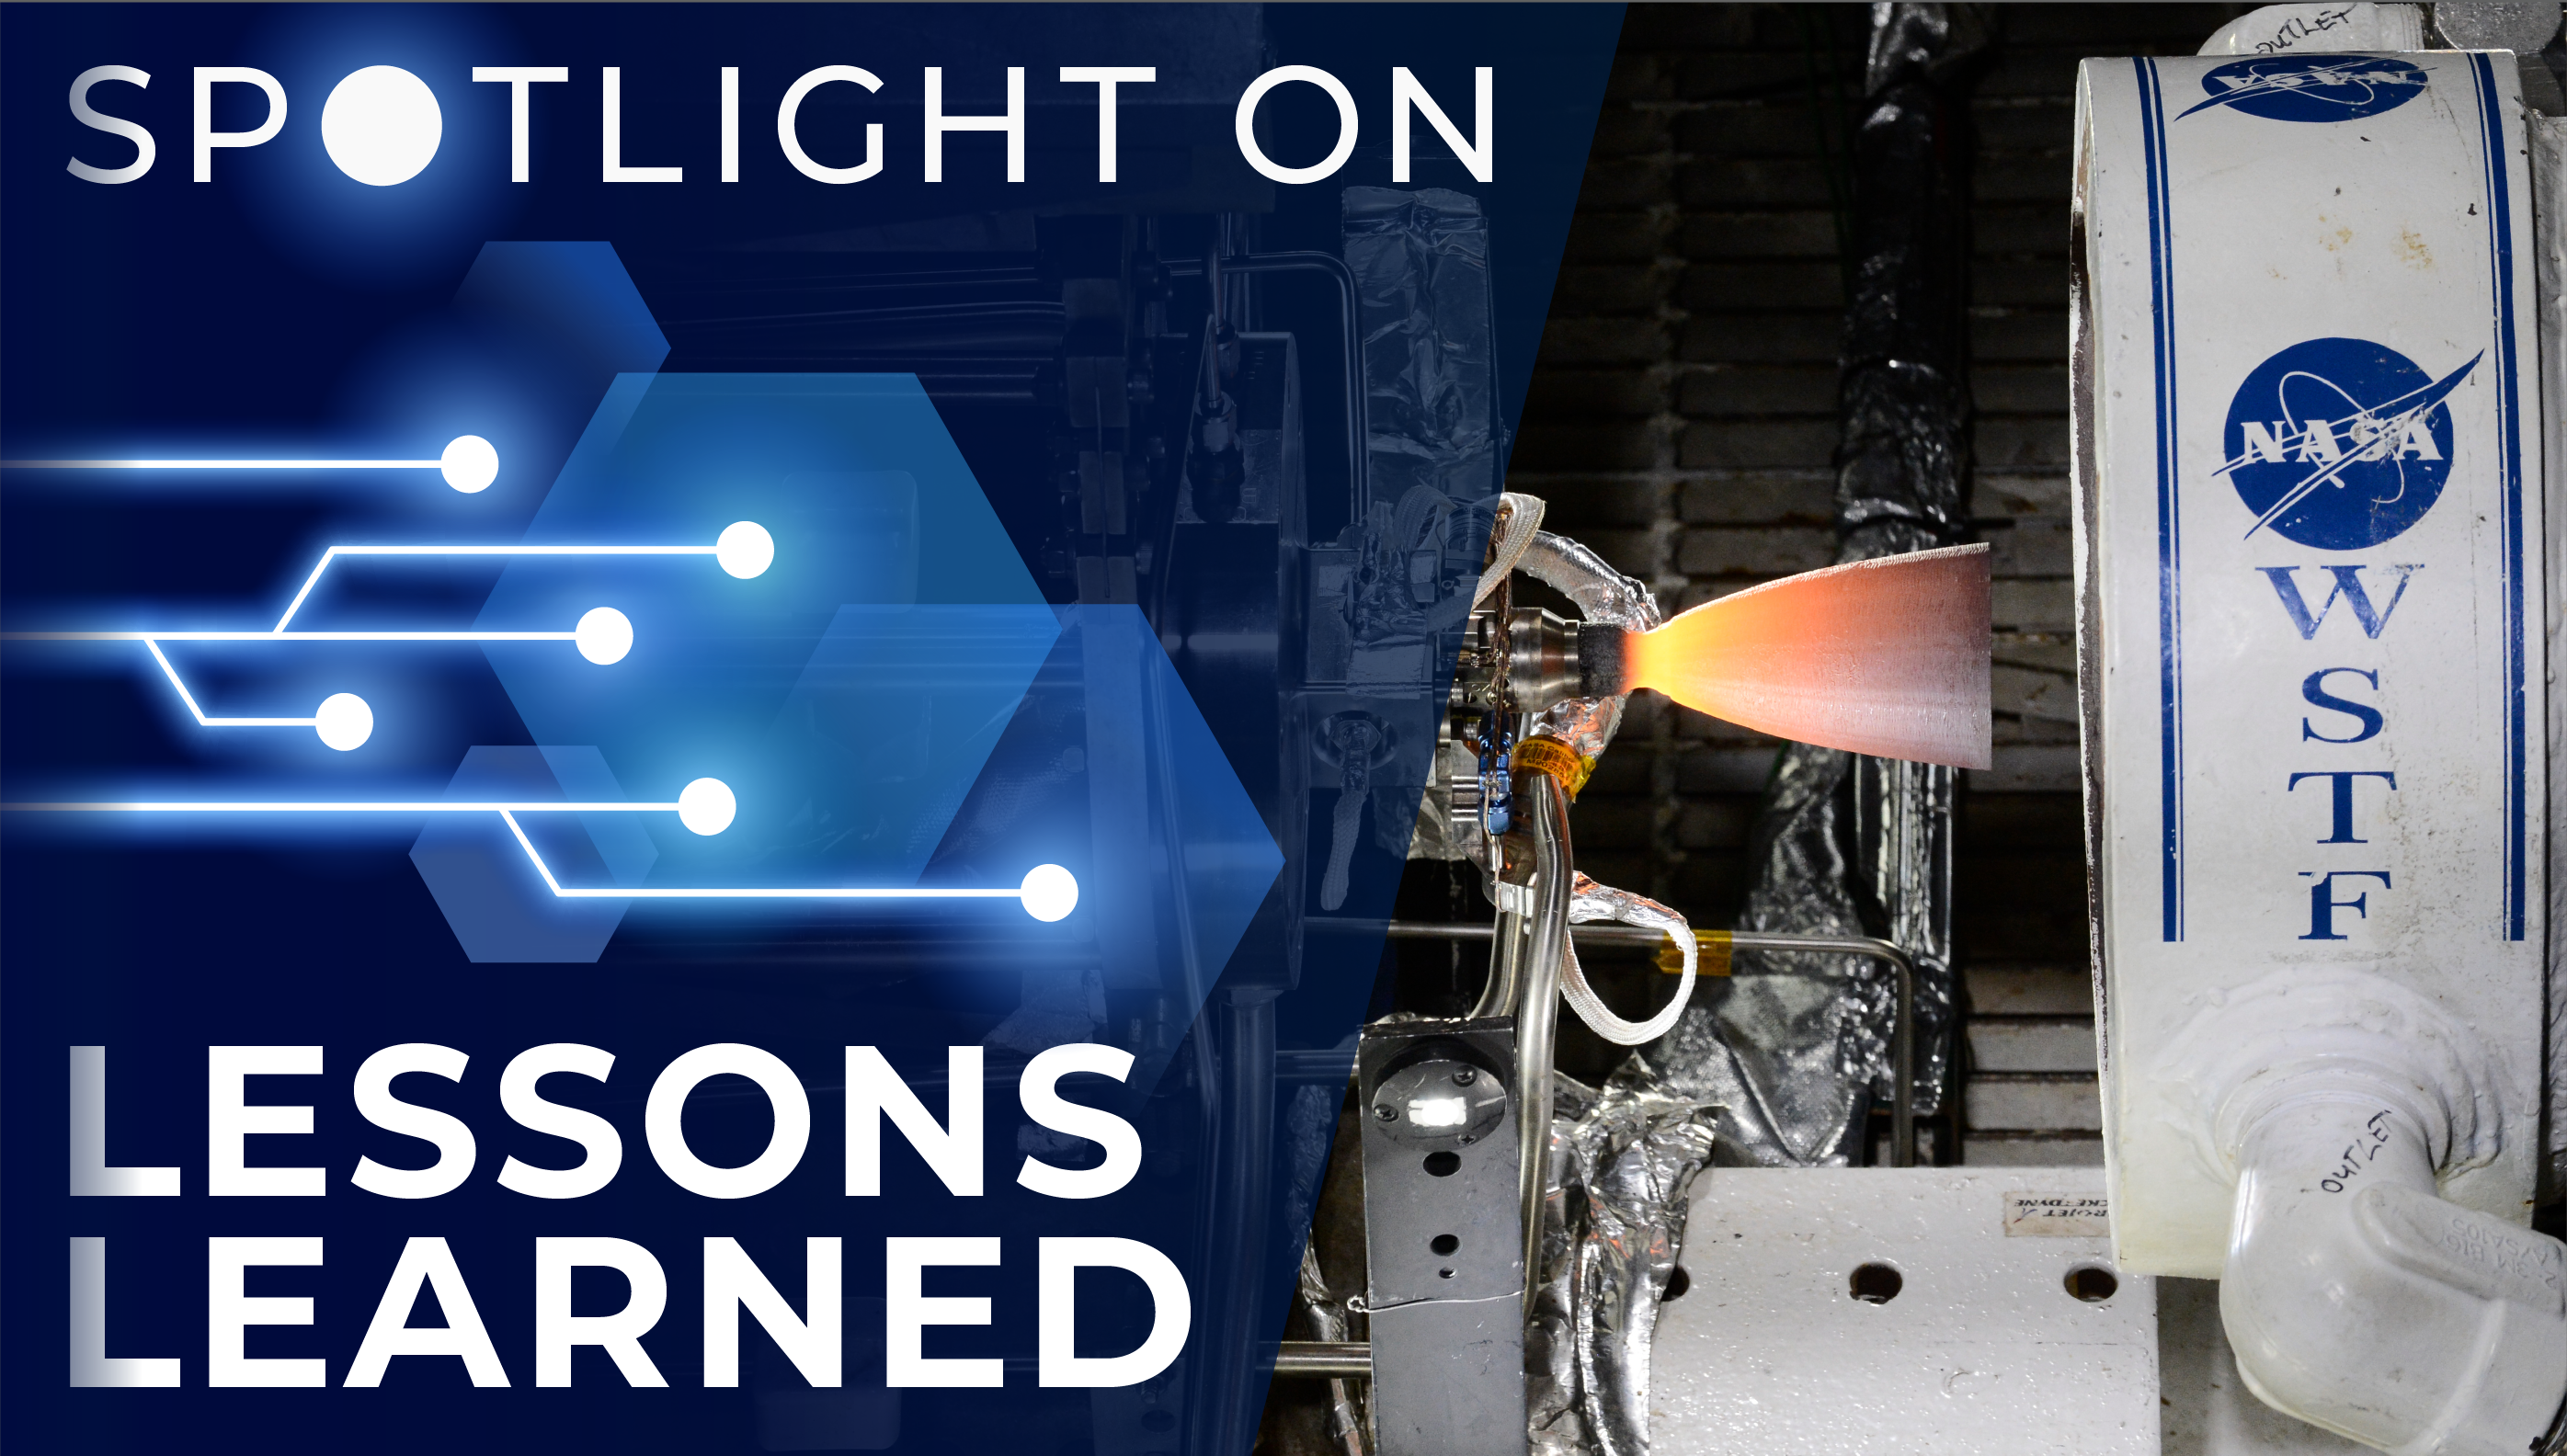 Spotlight on Lessons Learned: Project Management Lessons Learned on a Fast Track Engine Test